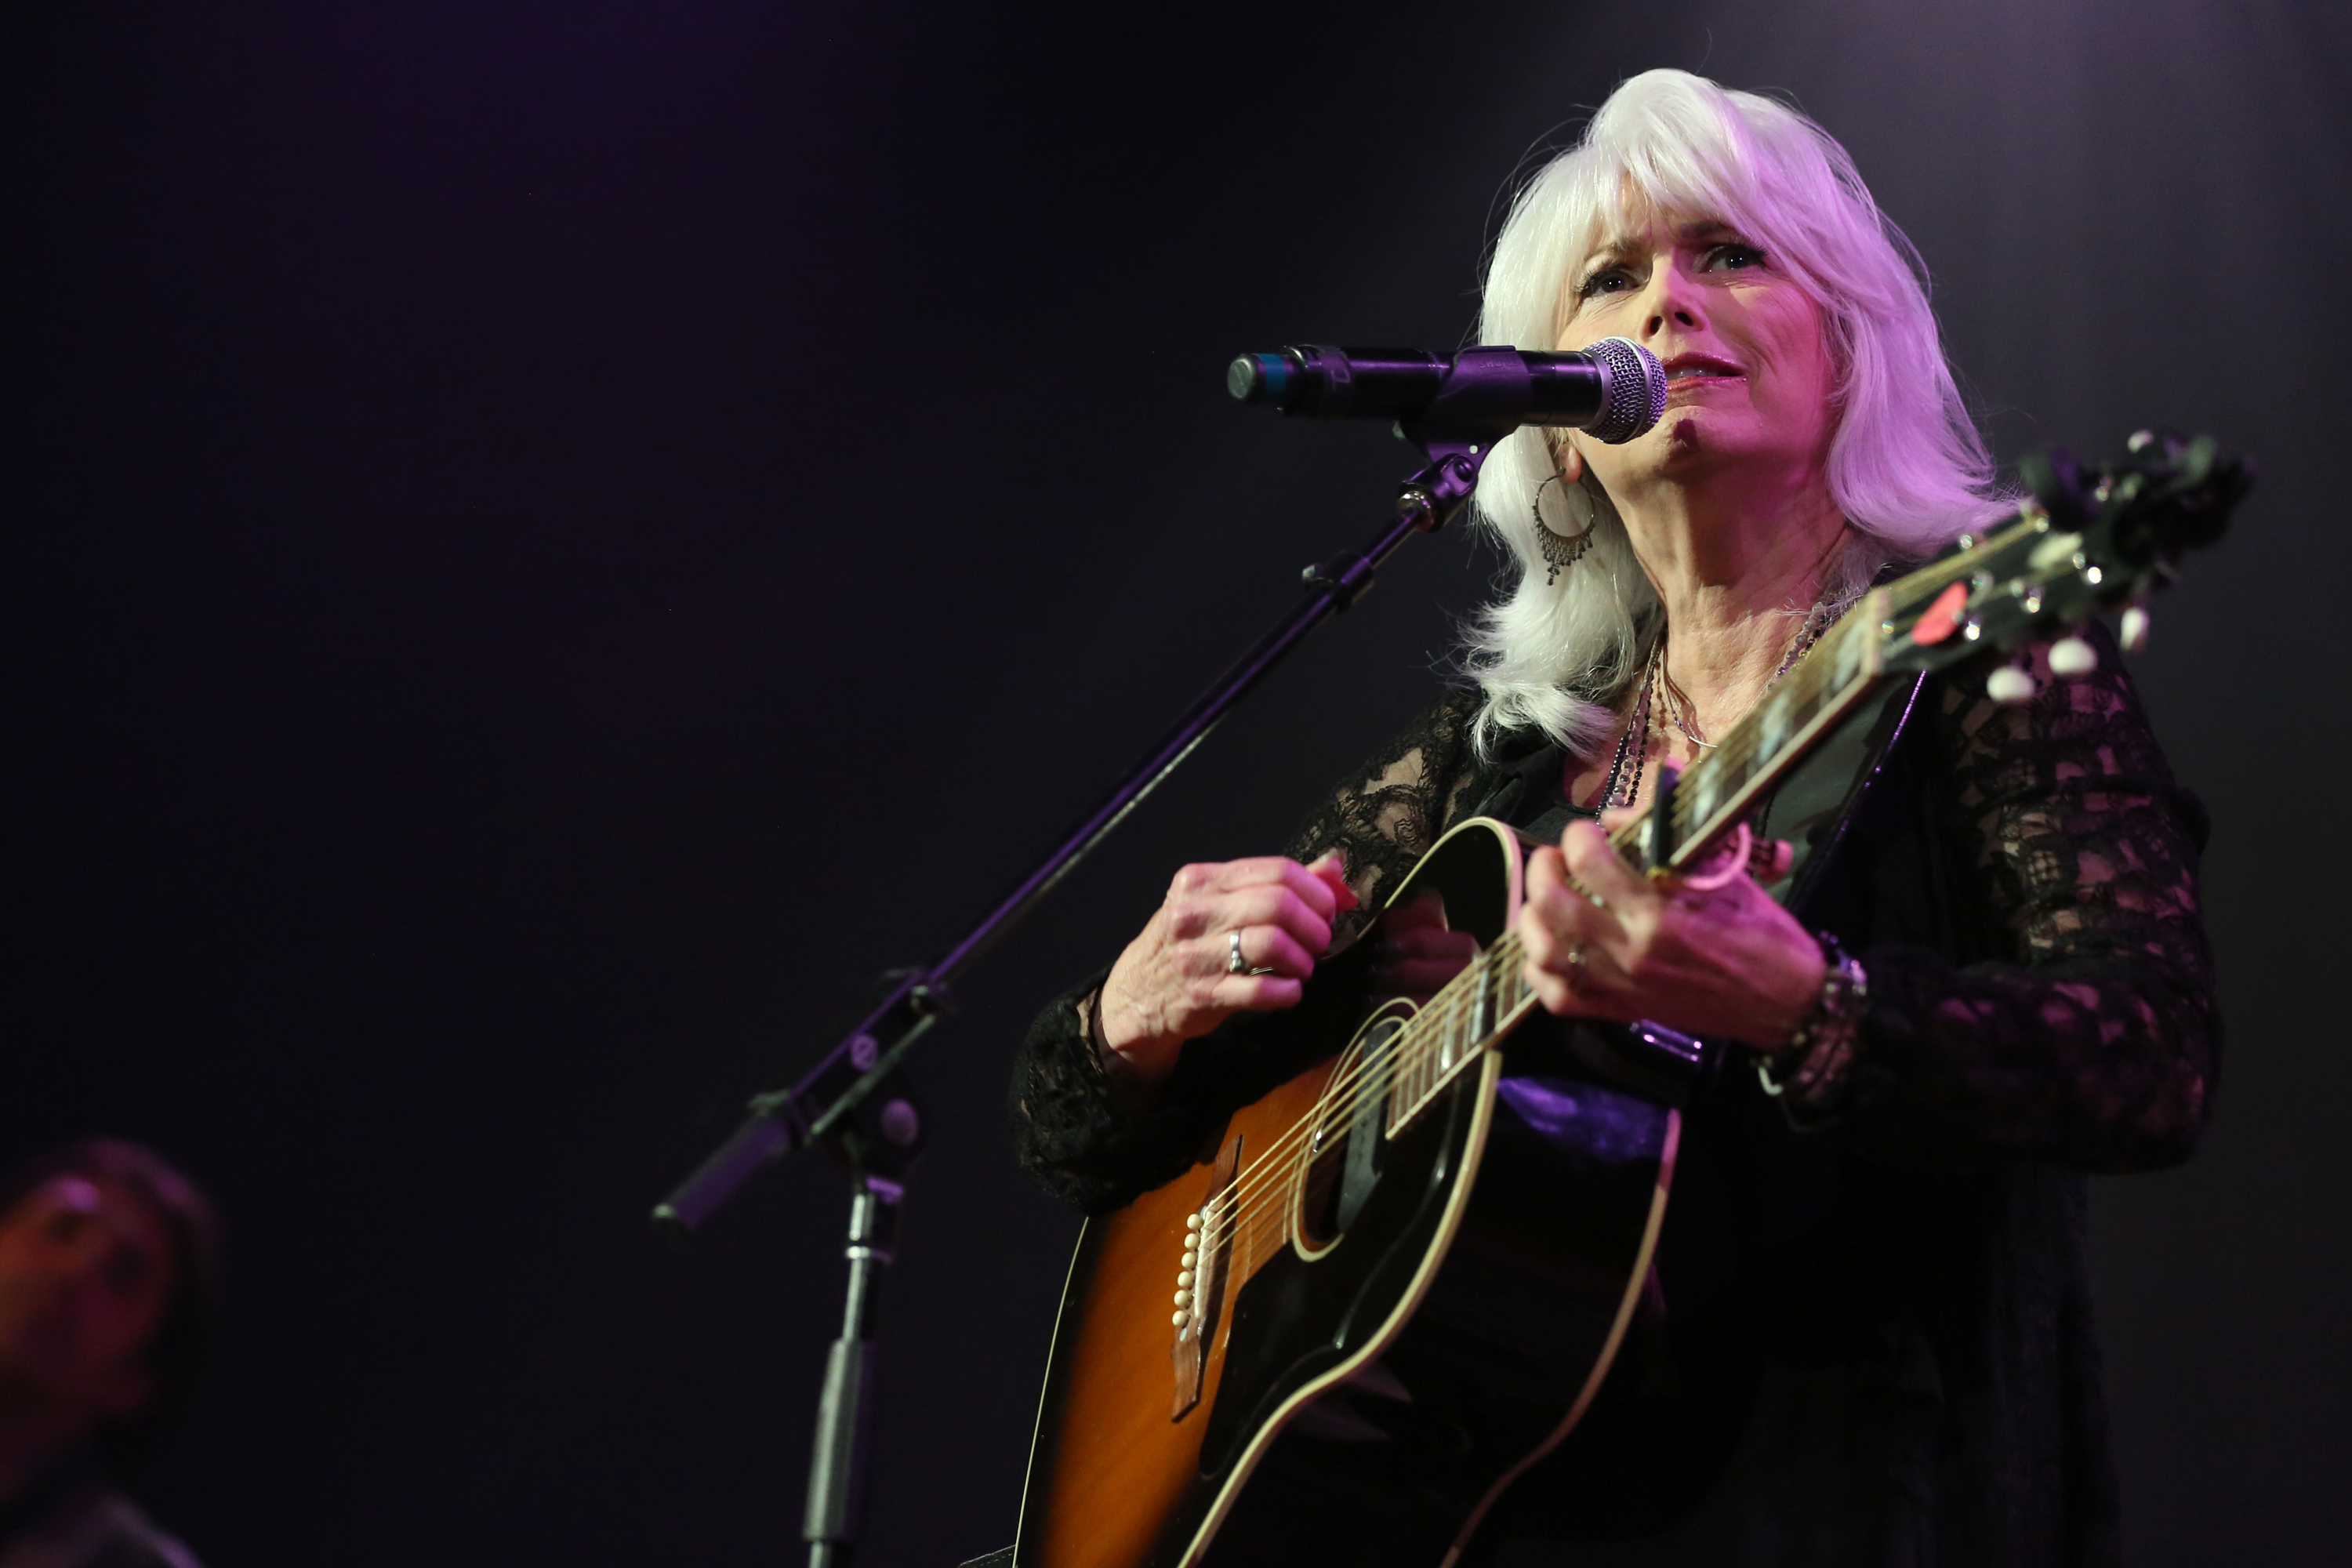 Emmylou Harris headlines Women's Refugee Commission benefit at Capital One Hall